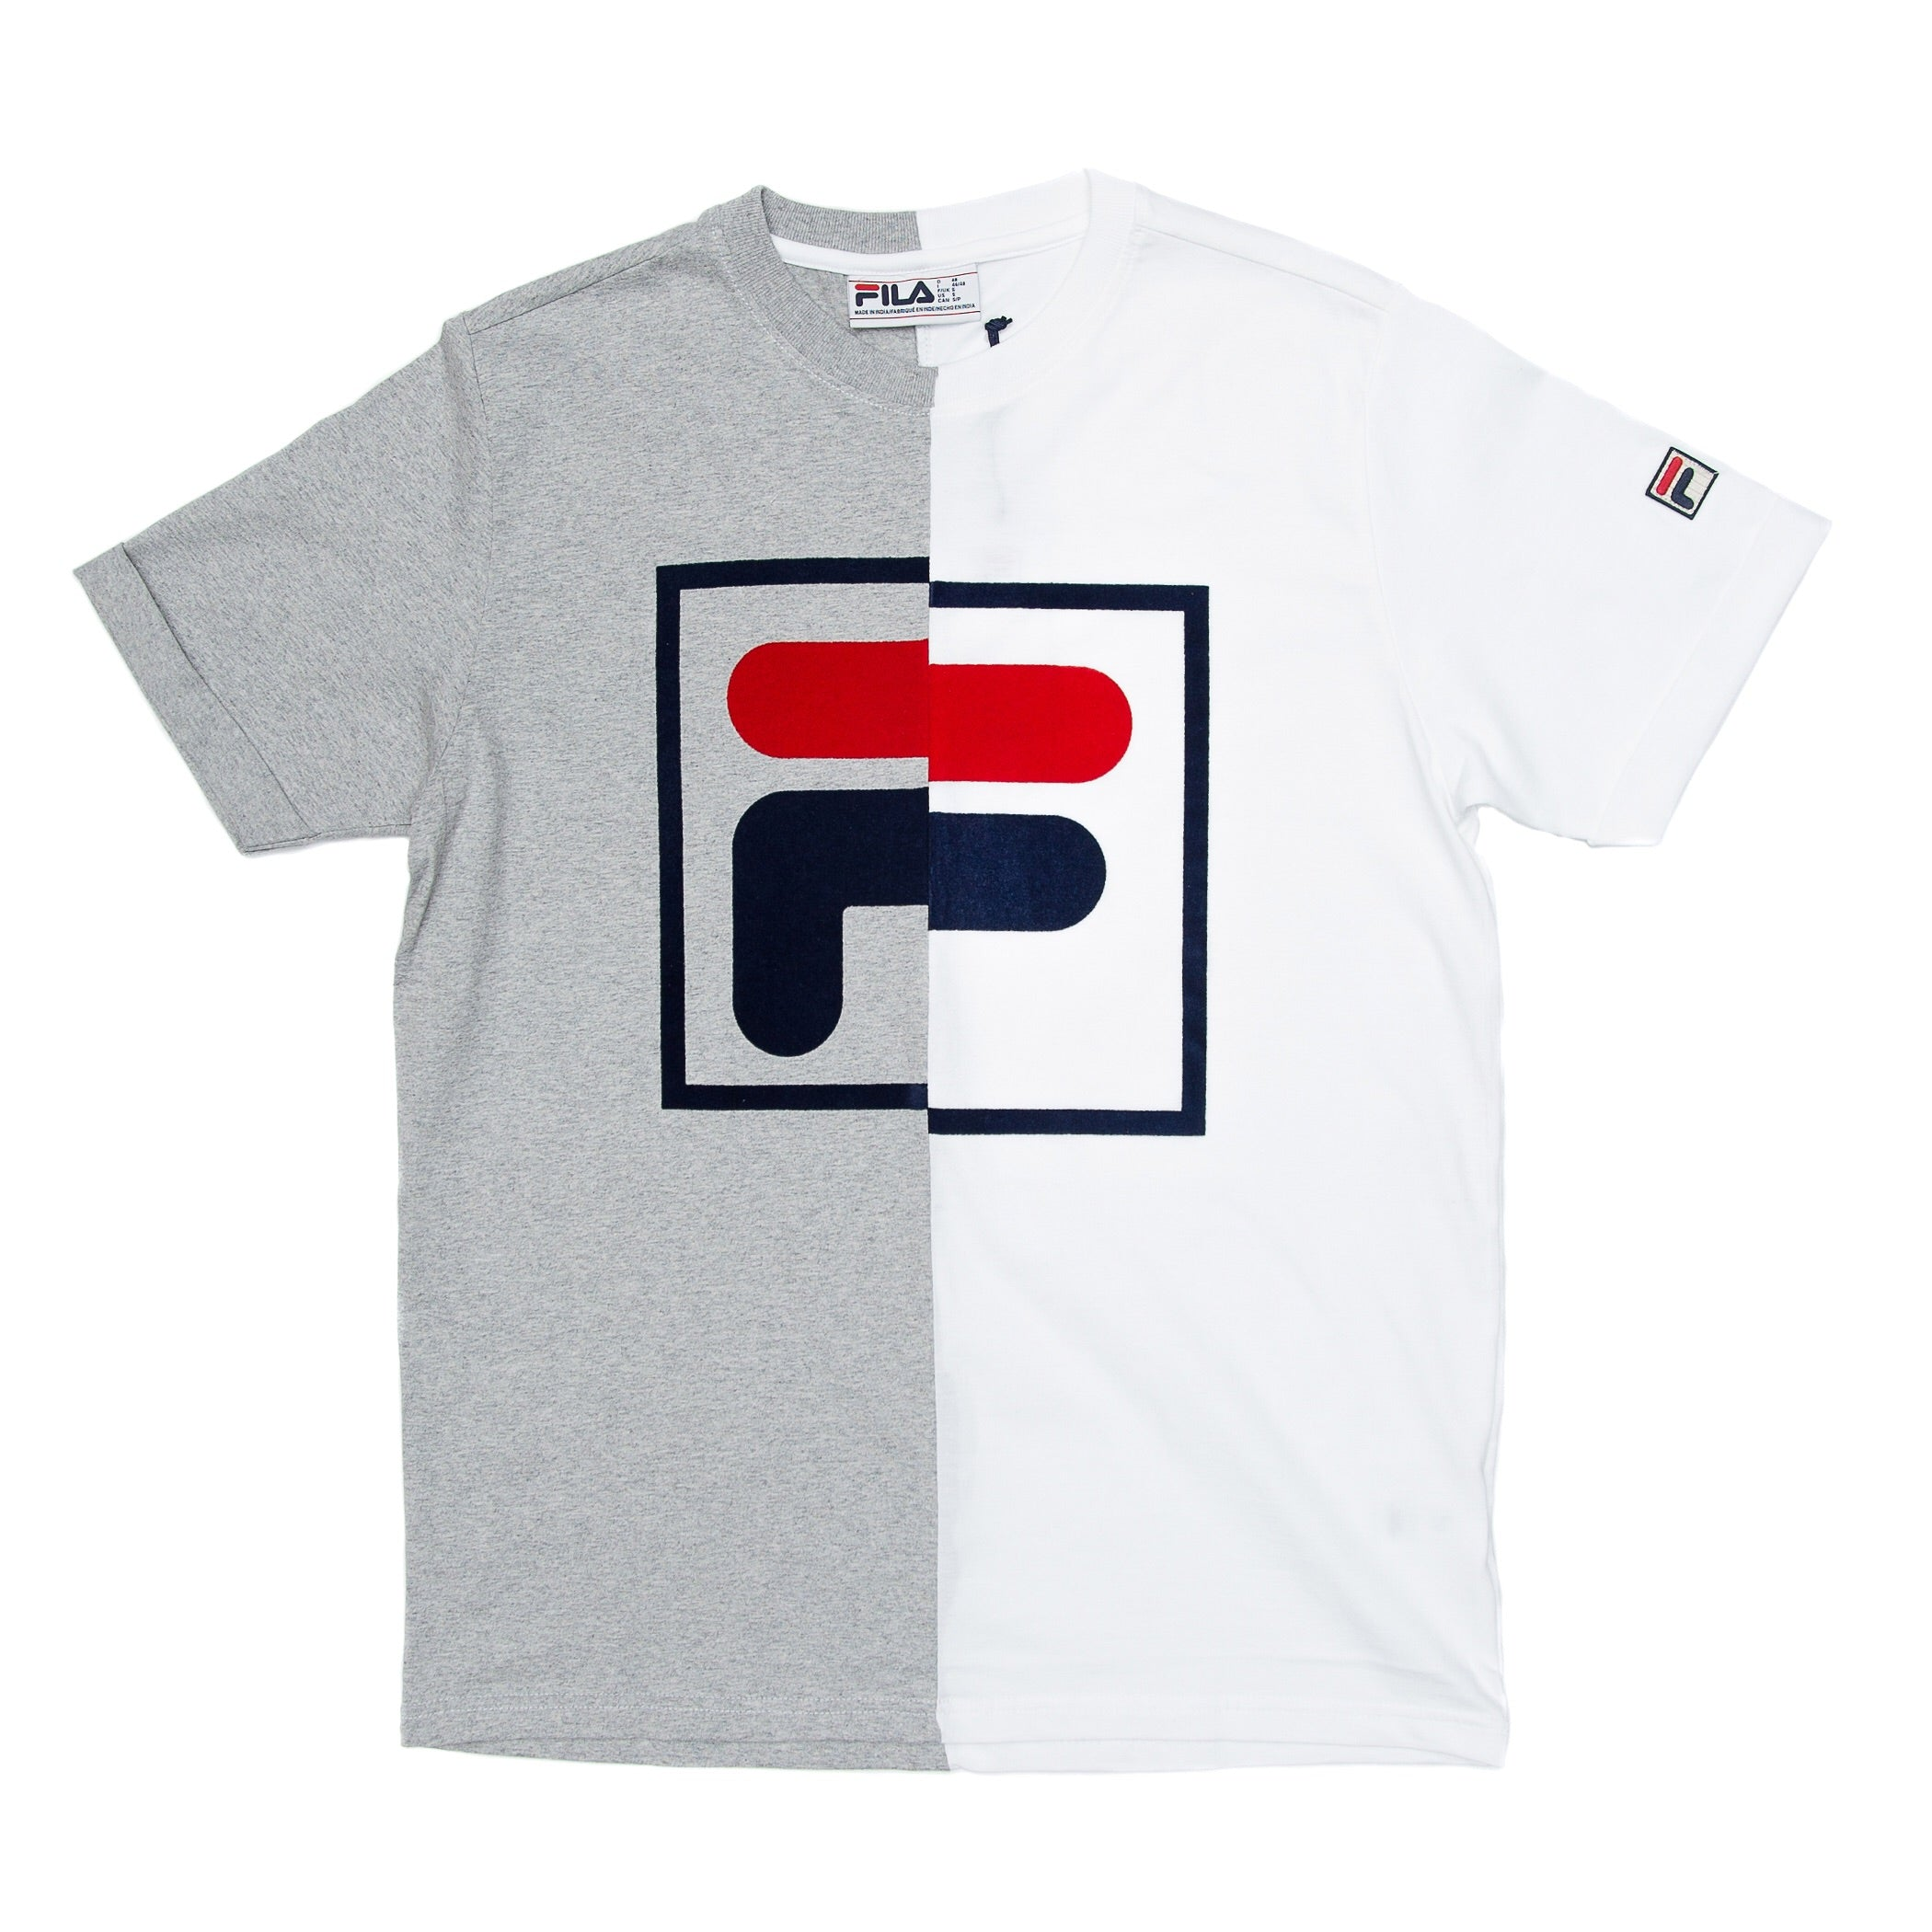 Fila - Hunter F Box Tee